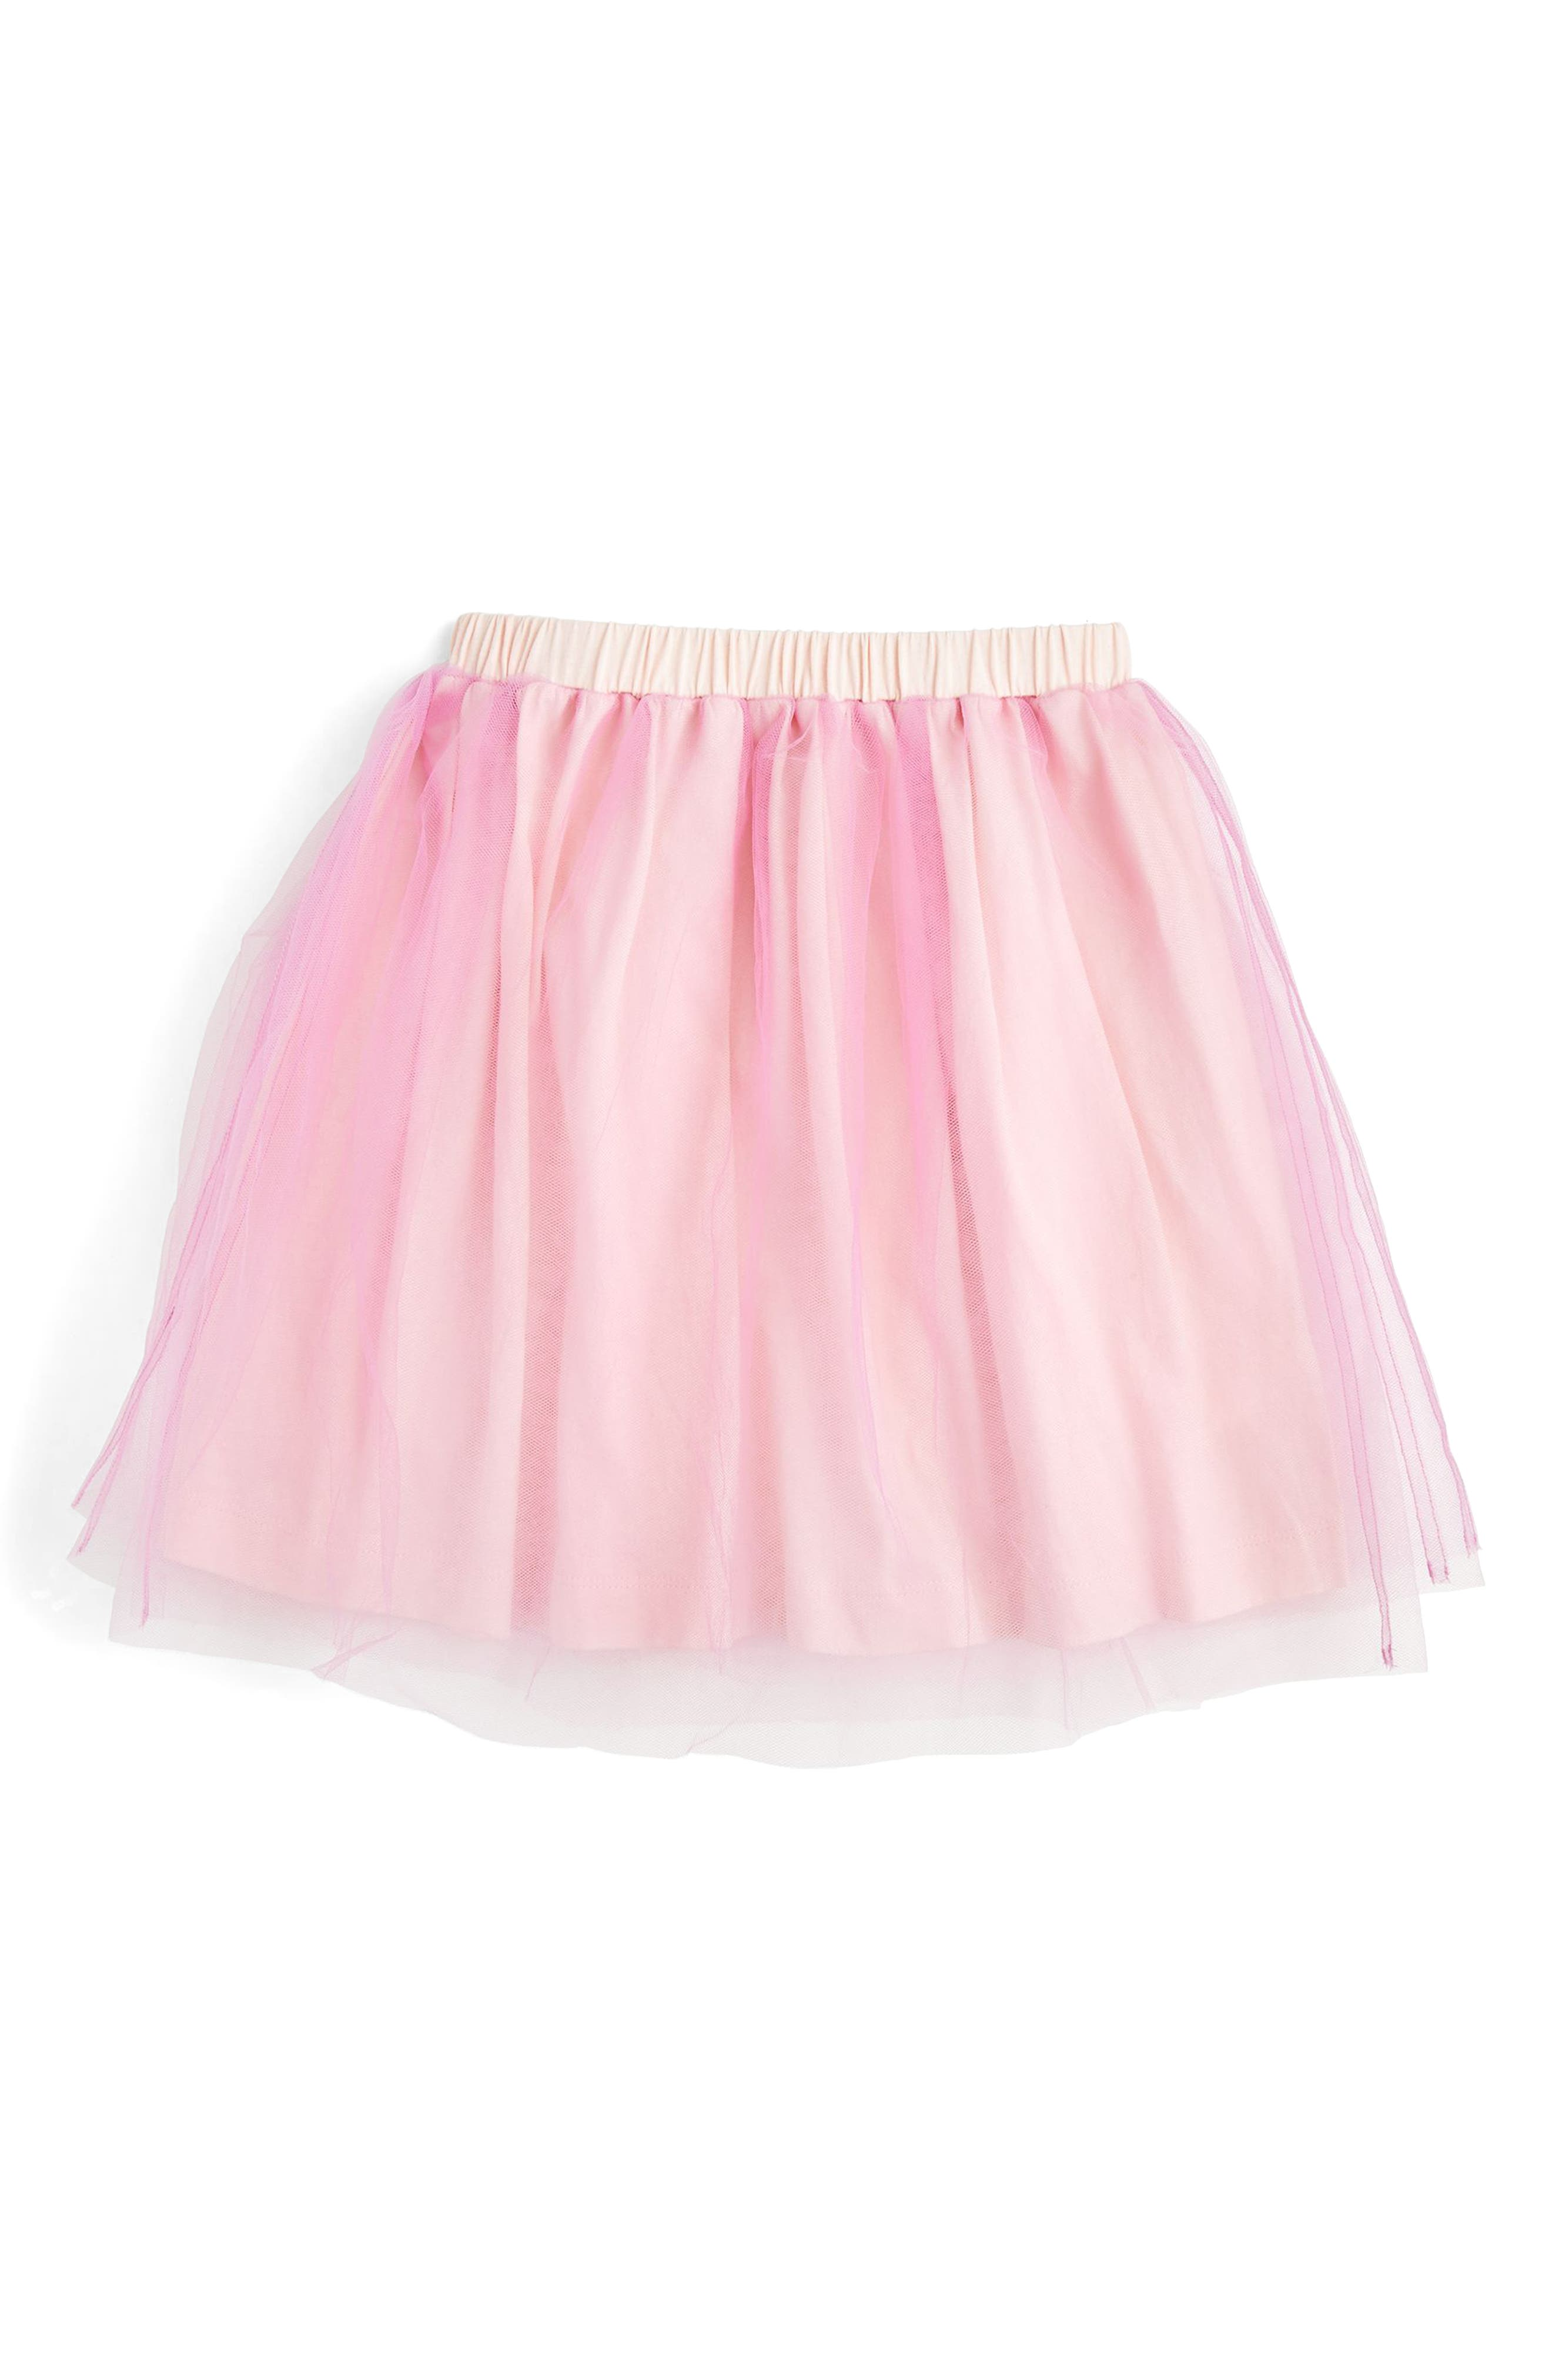 CREWCUTS BY J.CREW,                             Tulle Skirt,                             Main thumbnail 1, color,                             650